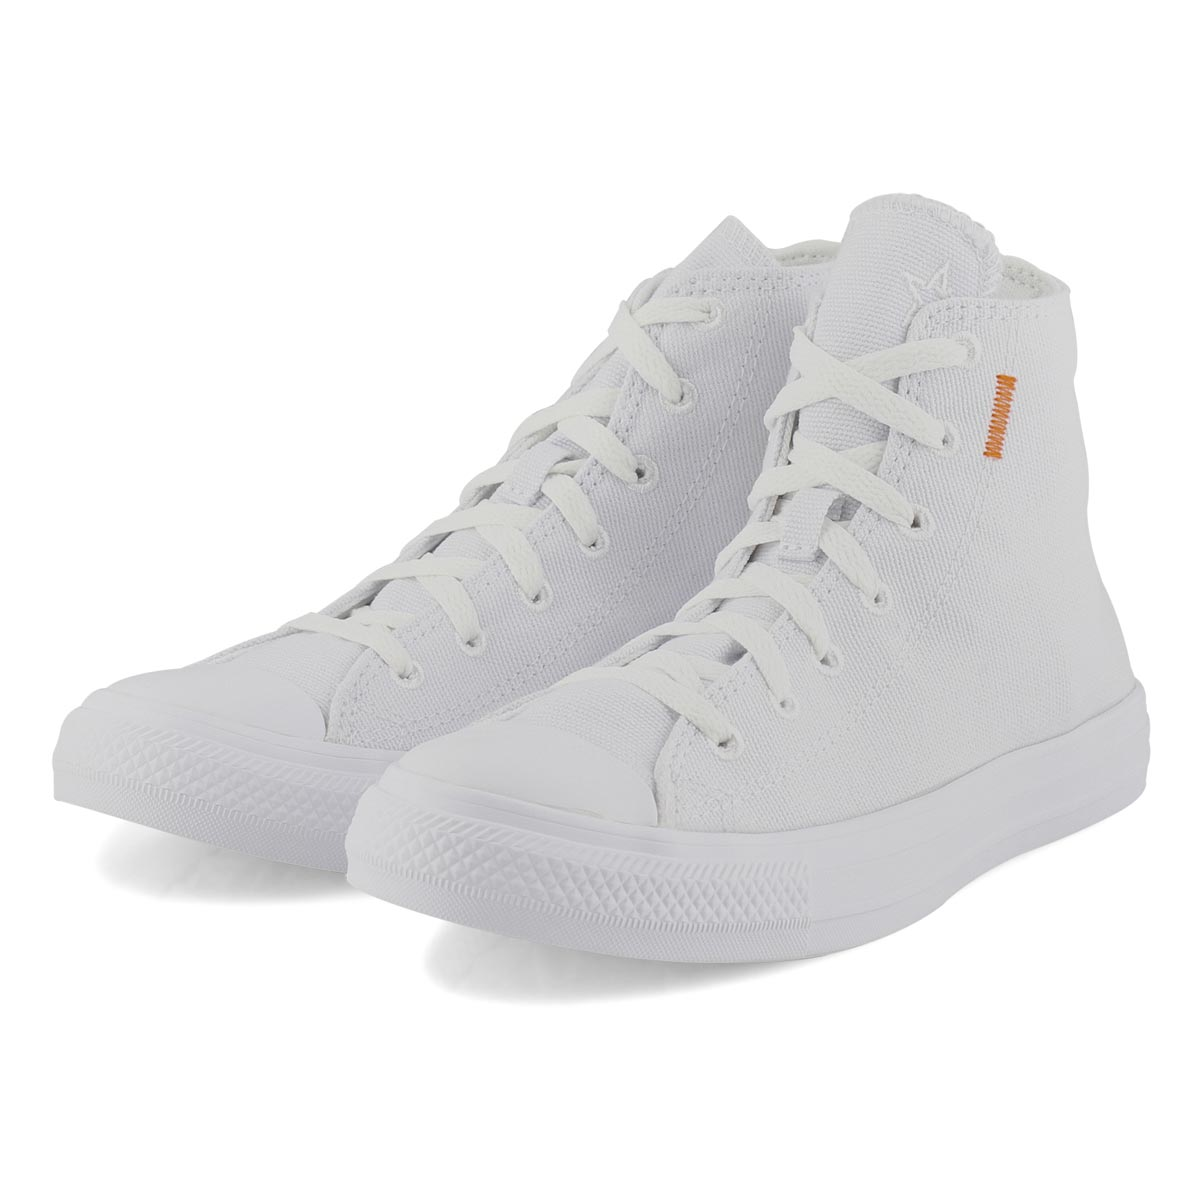 Lds CTAS white/lemon/black hi top snkr